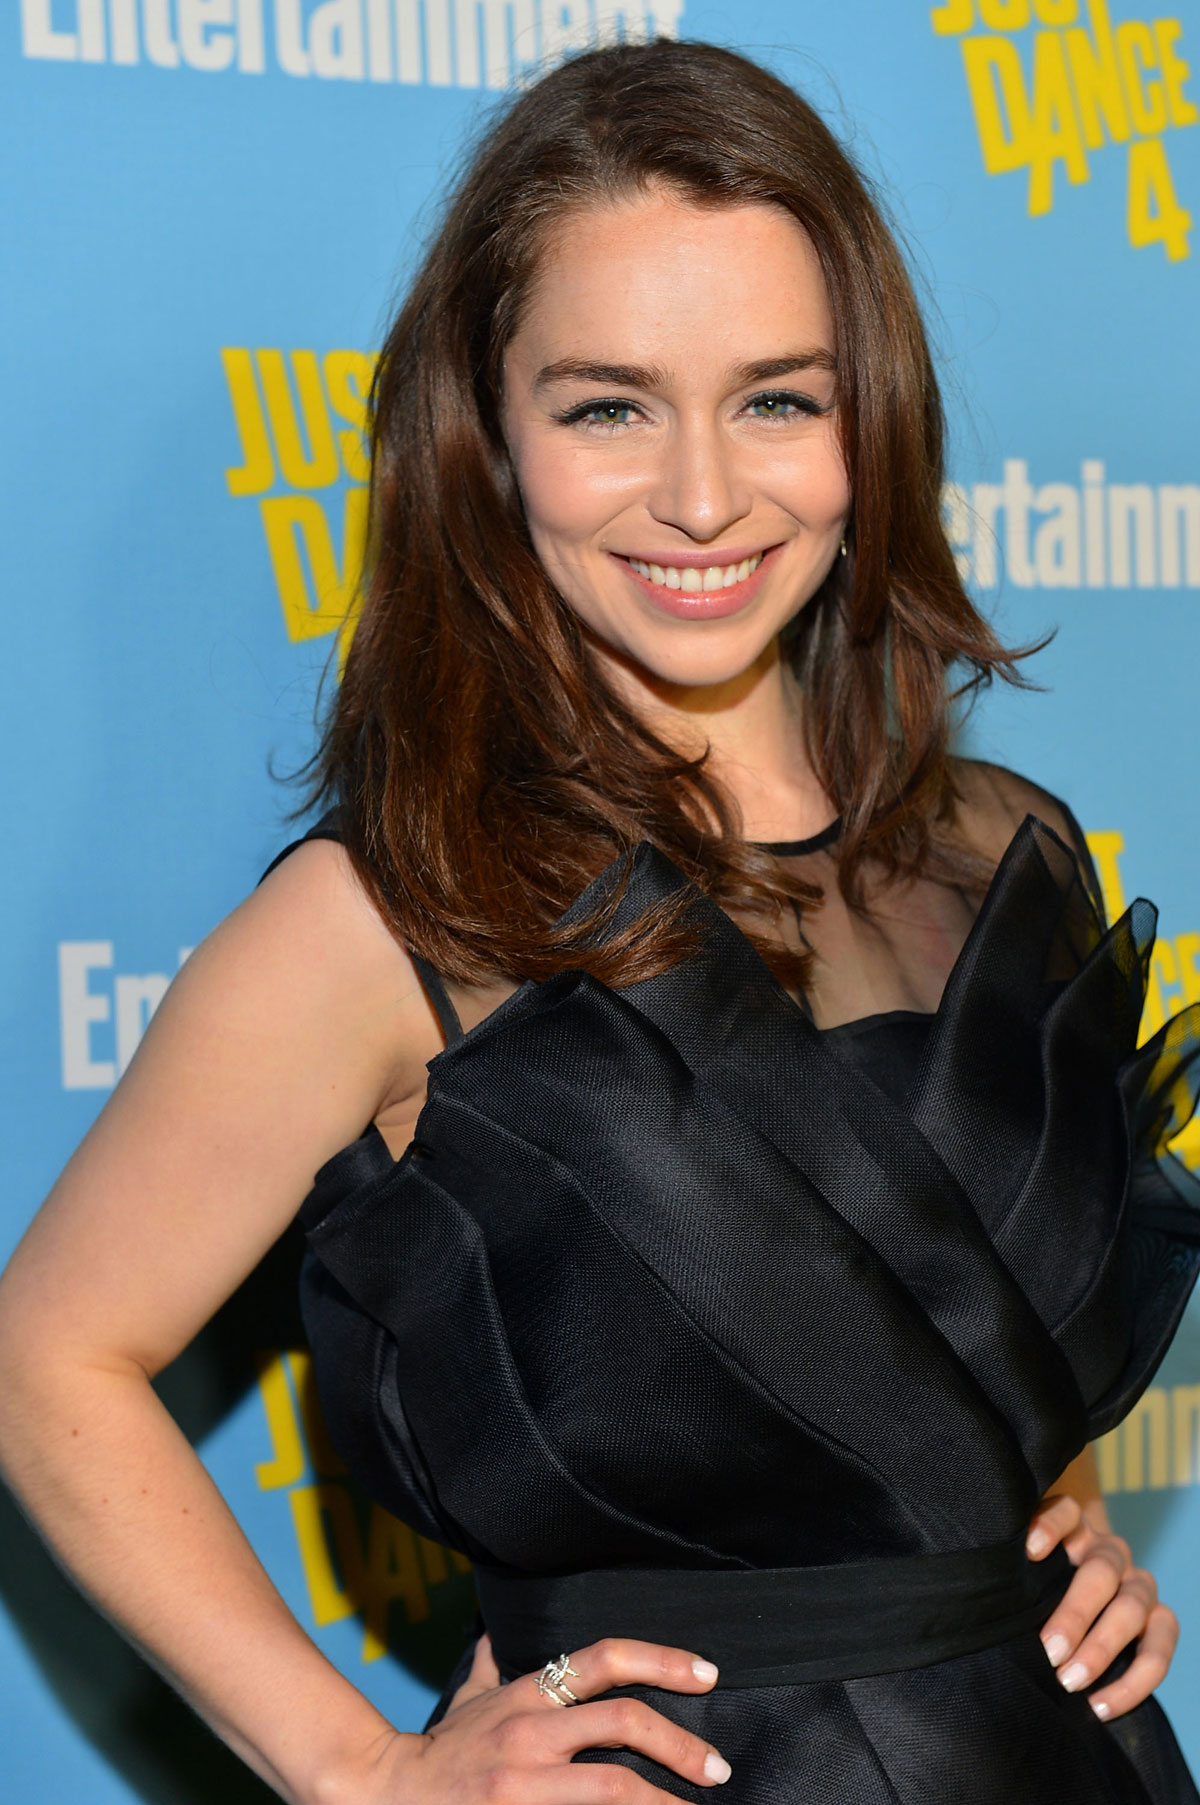 emilia clarke at entertainment weekly party at comiccon